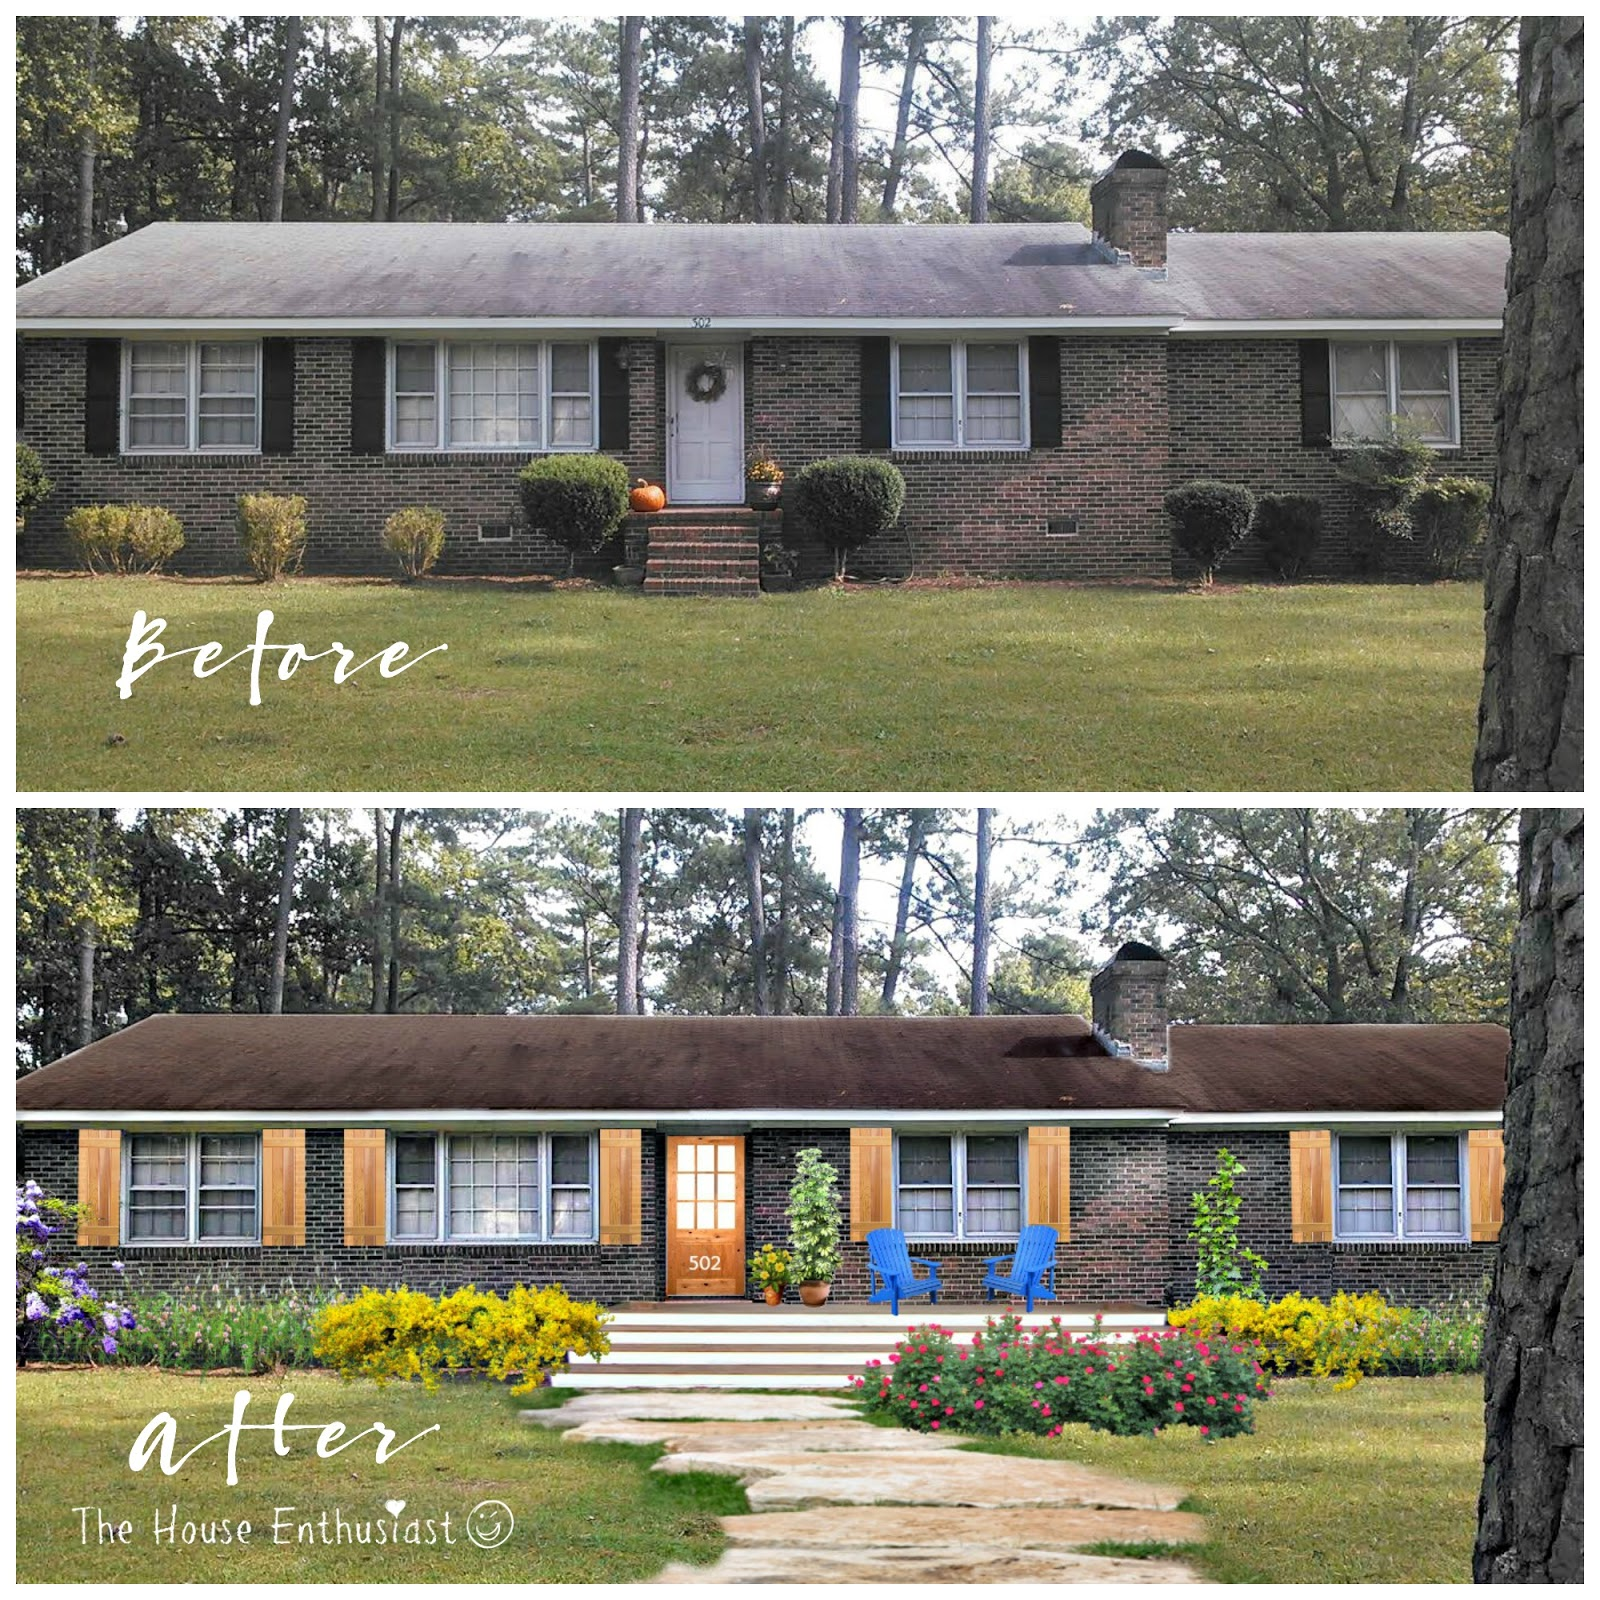 The house enthusiast before and after house makeovers for How to build a ranch house